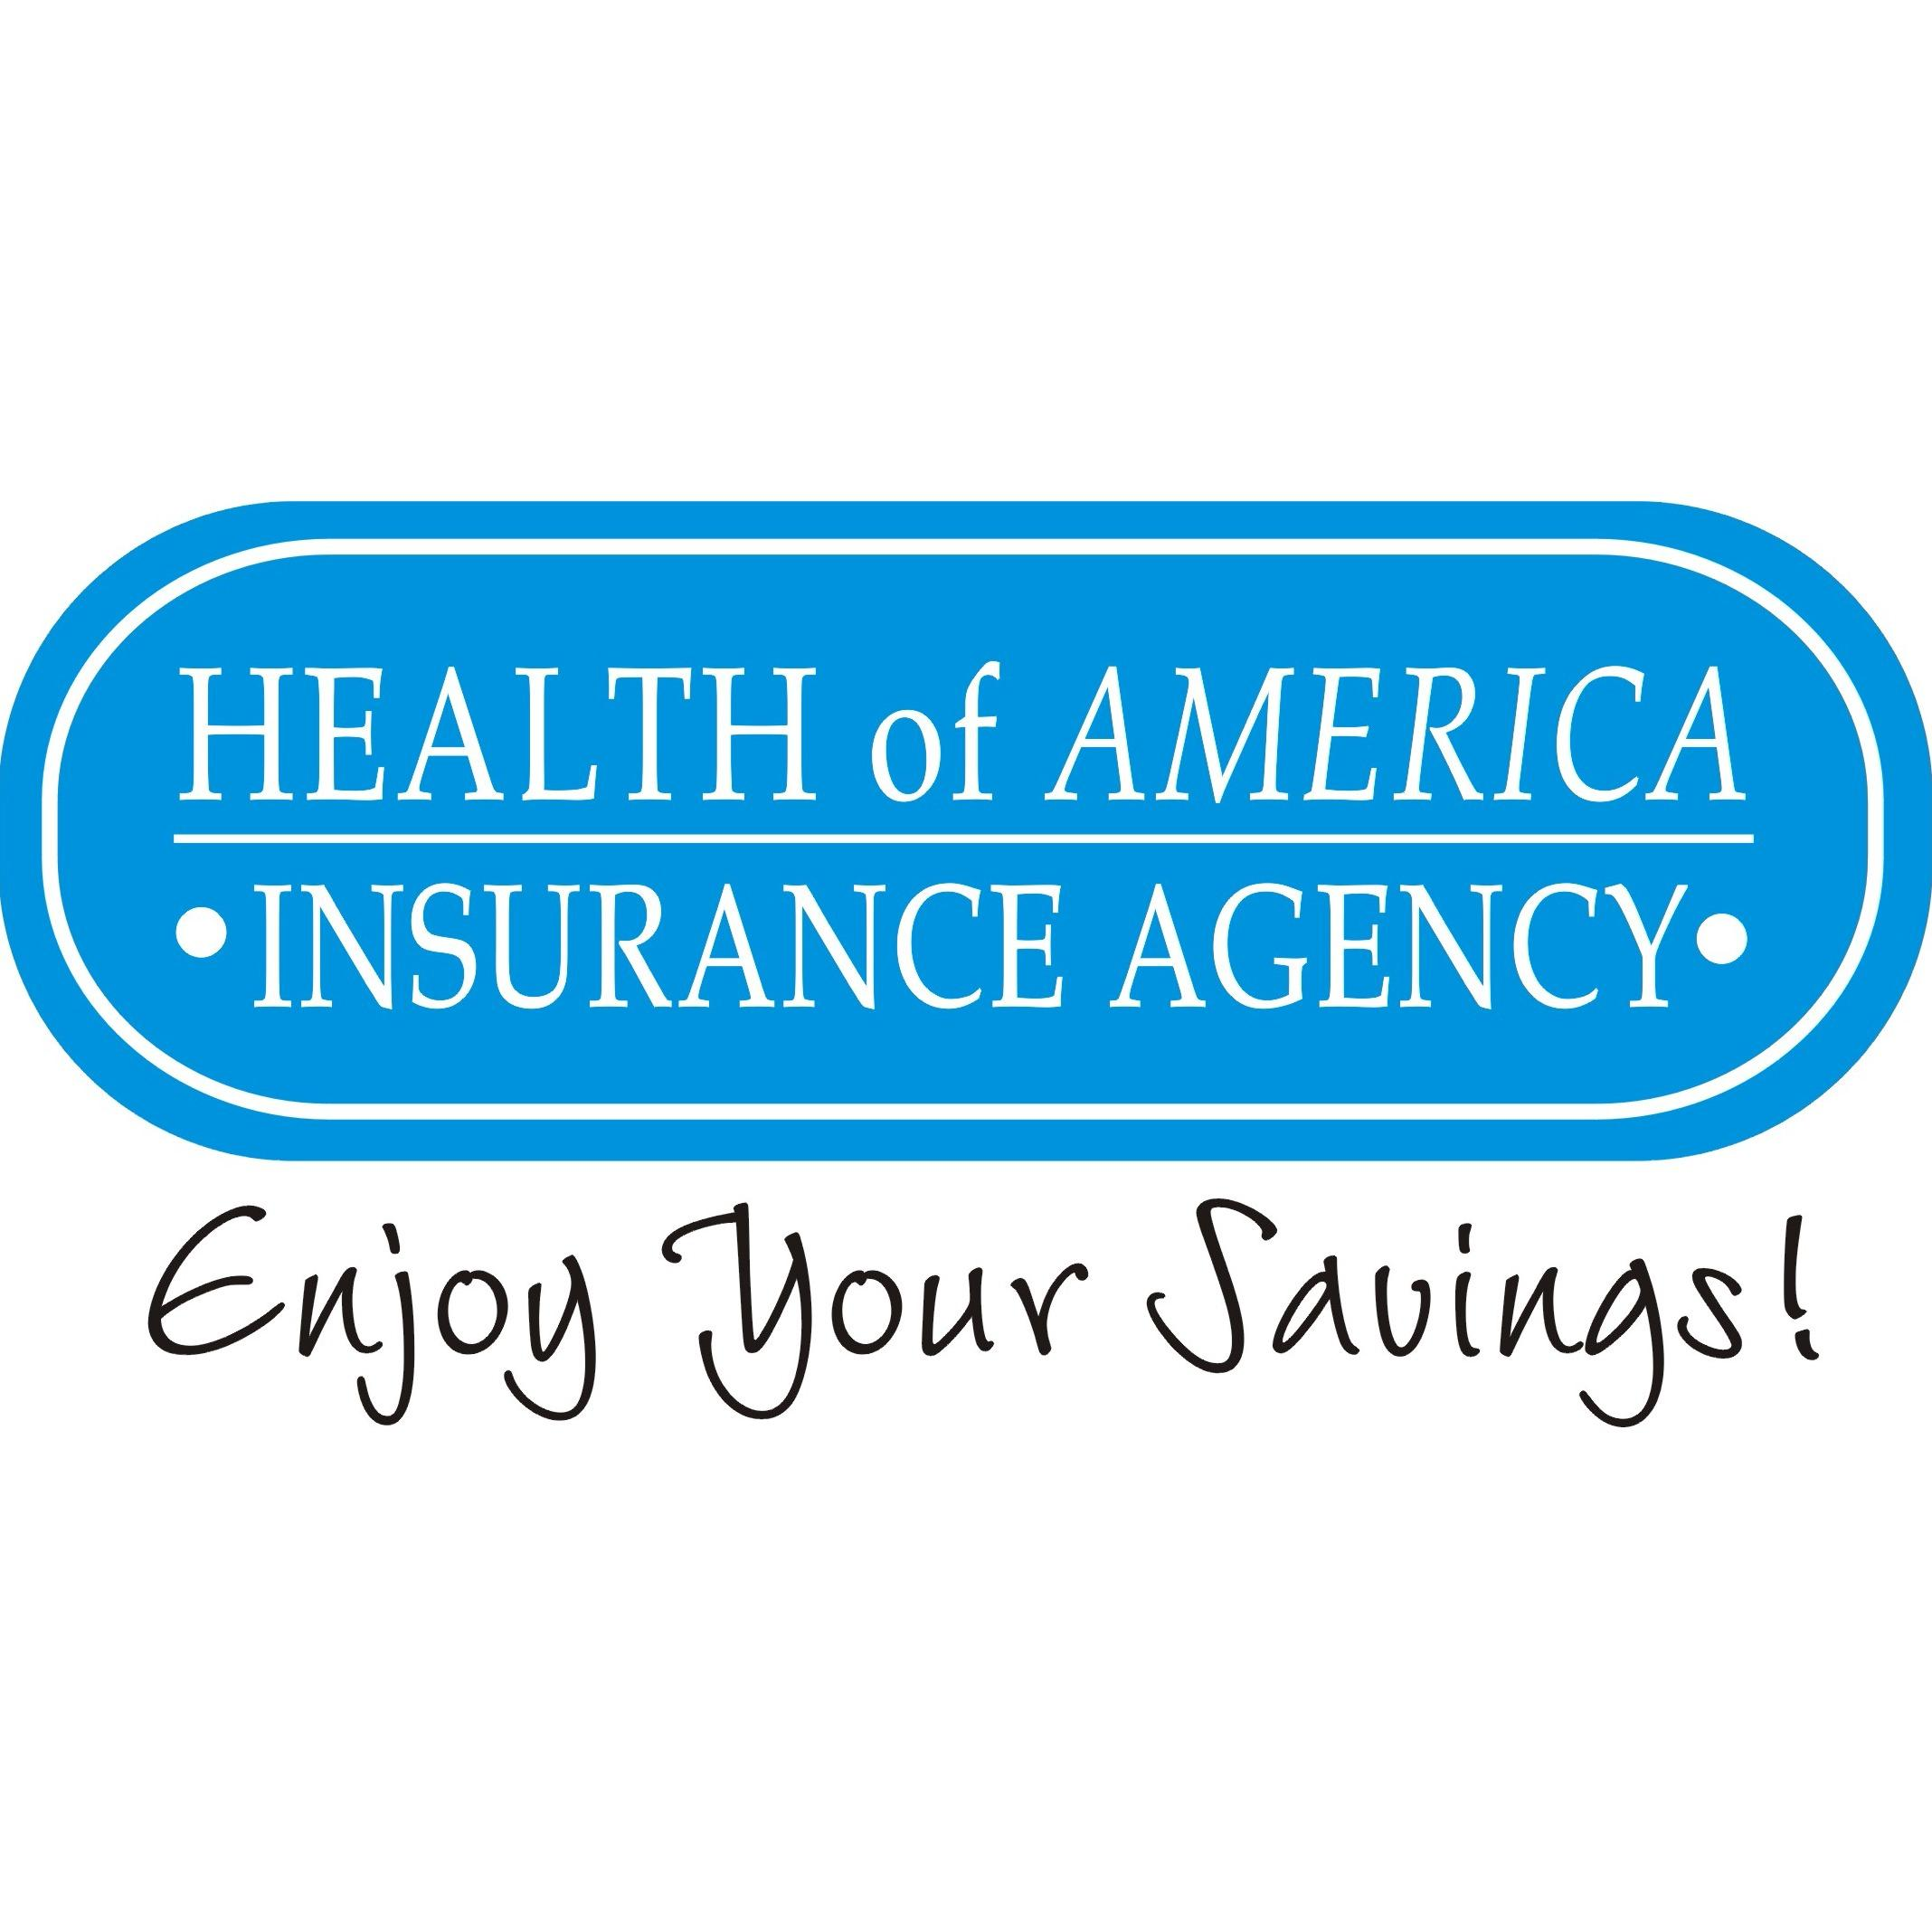 Health of America Insurance Agency - Golden Valley, MN - Insurance Agents